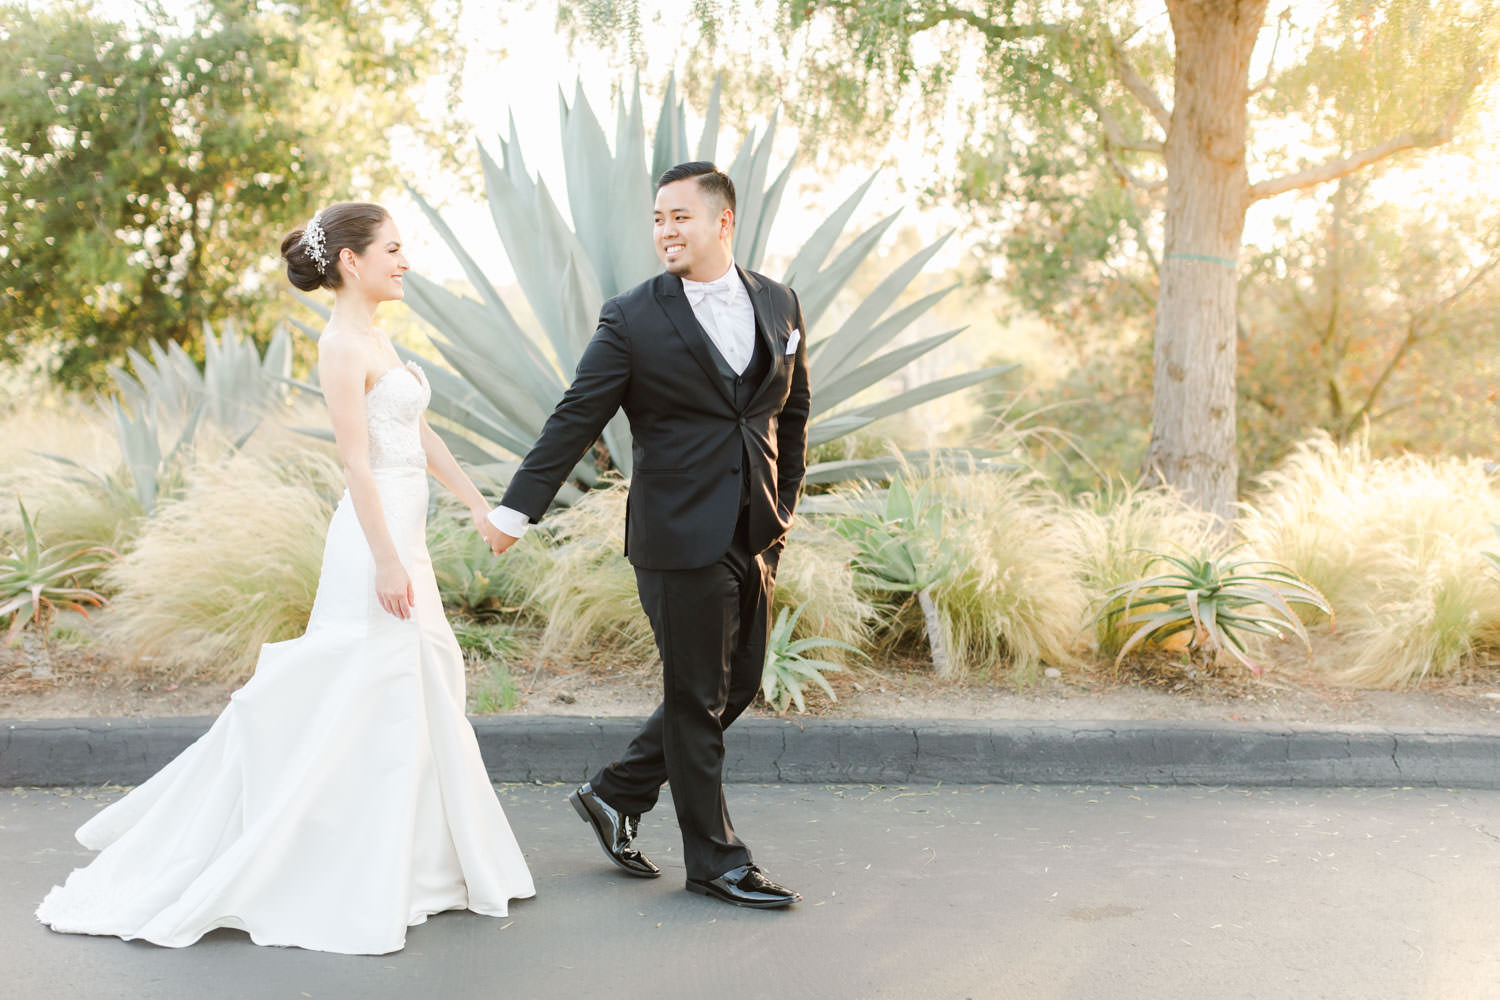 Bride and groom walking, Santalux Club wedding reception, Cavin Elizabeth Photography